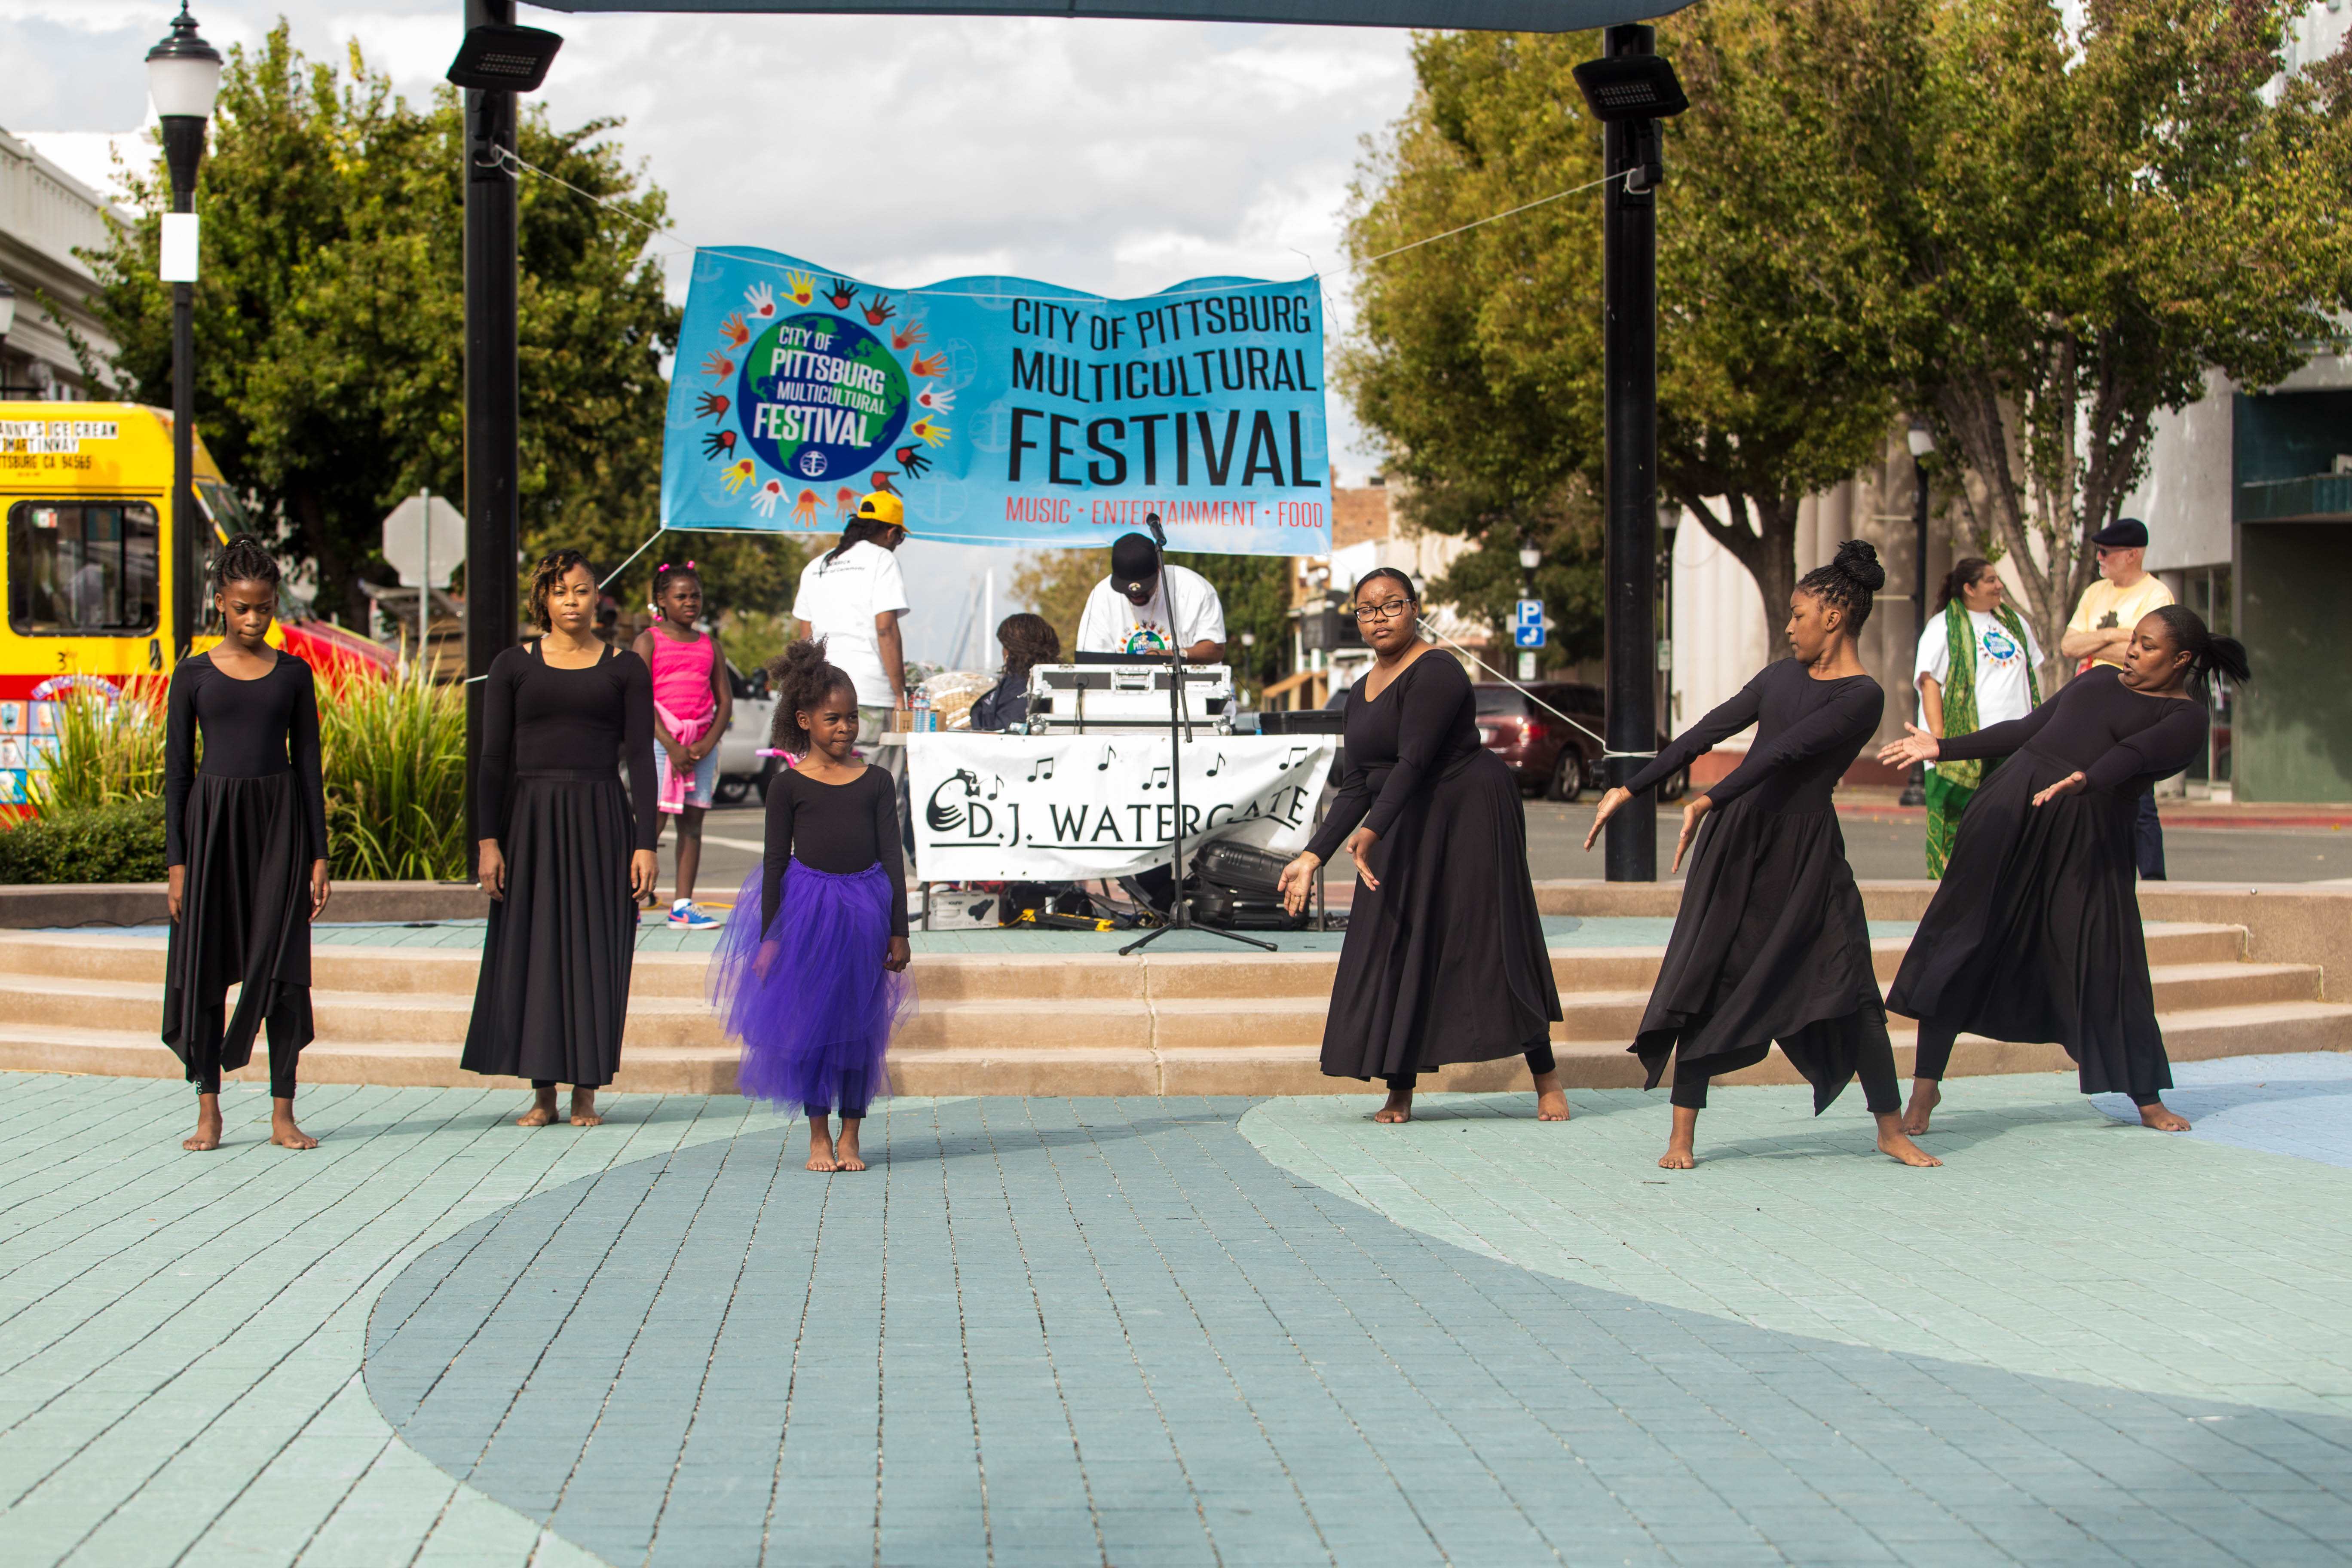 CITY_PITTSBURG_MULTICULTURAL_OCTOBER_2016 (738)